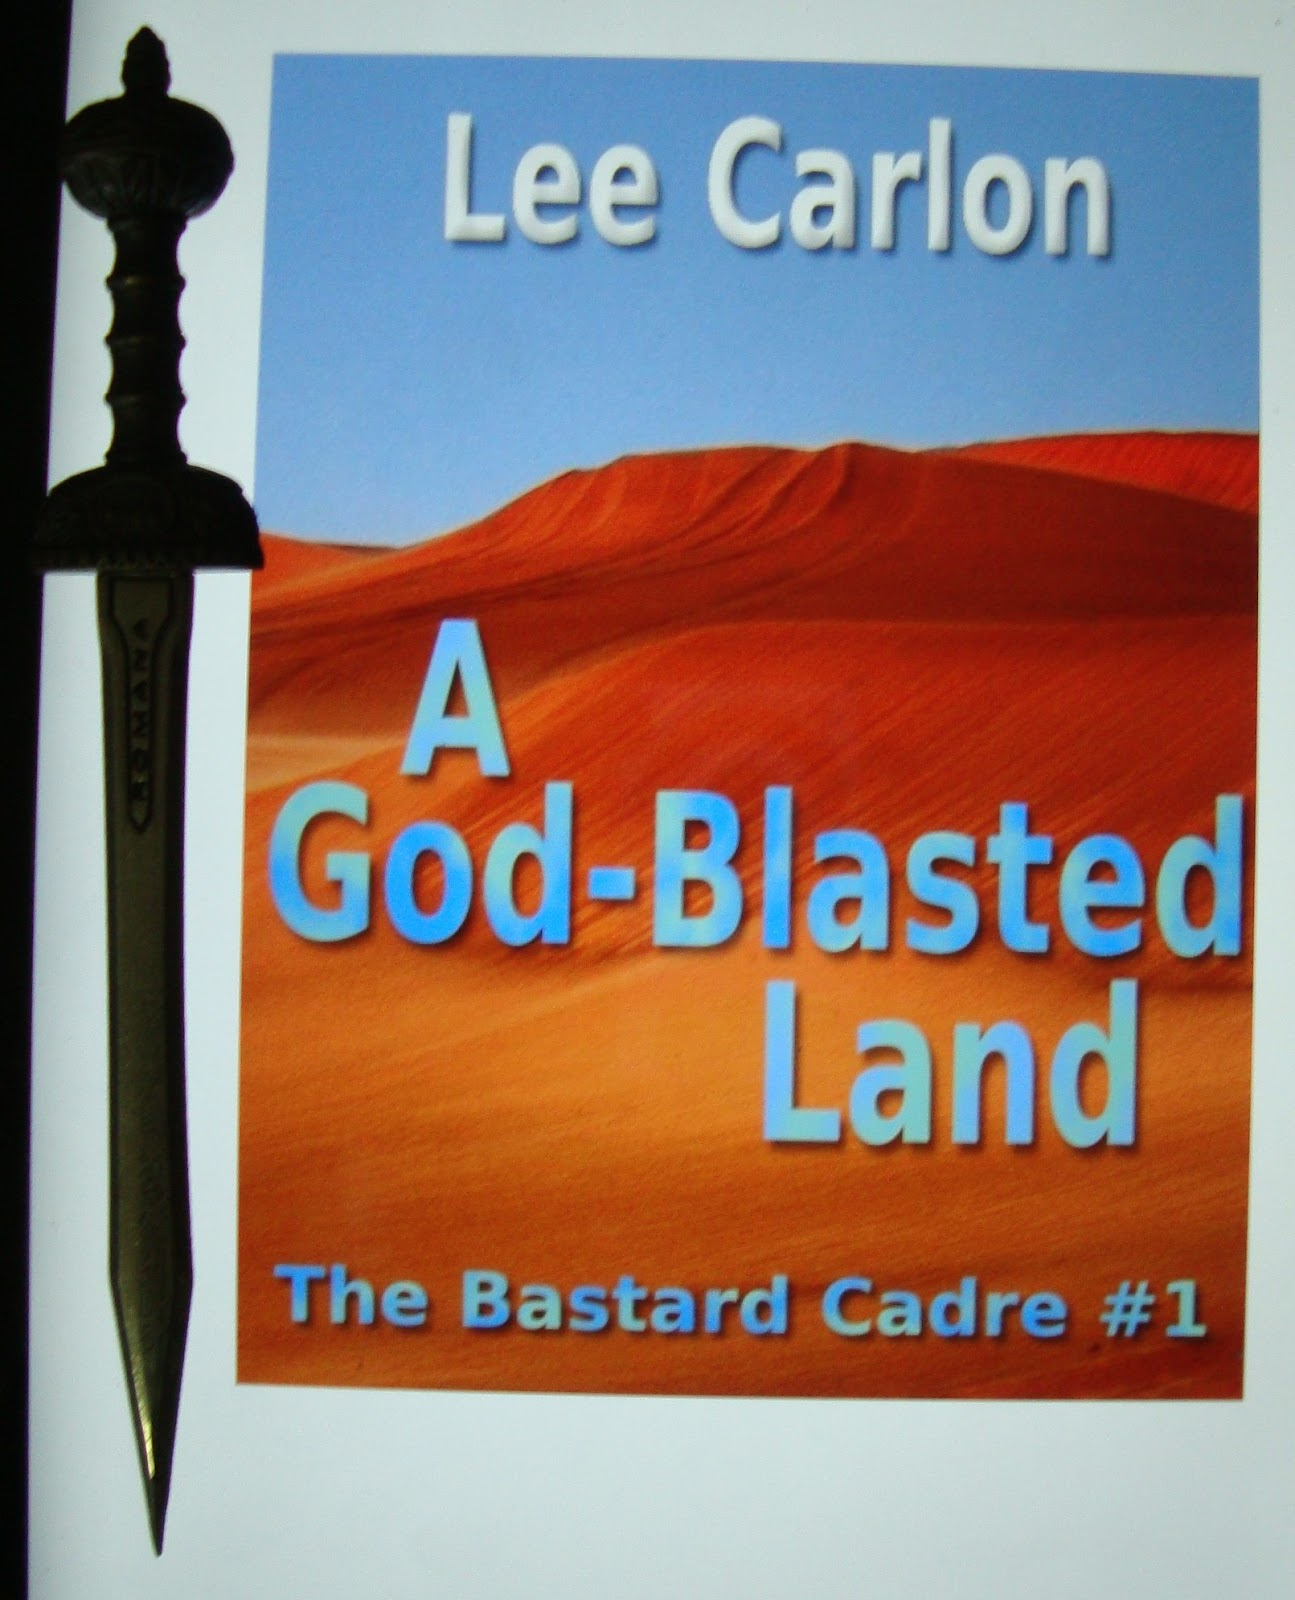 Bastard Libro Libros De Olethros A God Blasted Land Lee Carlon